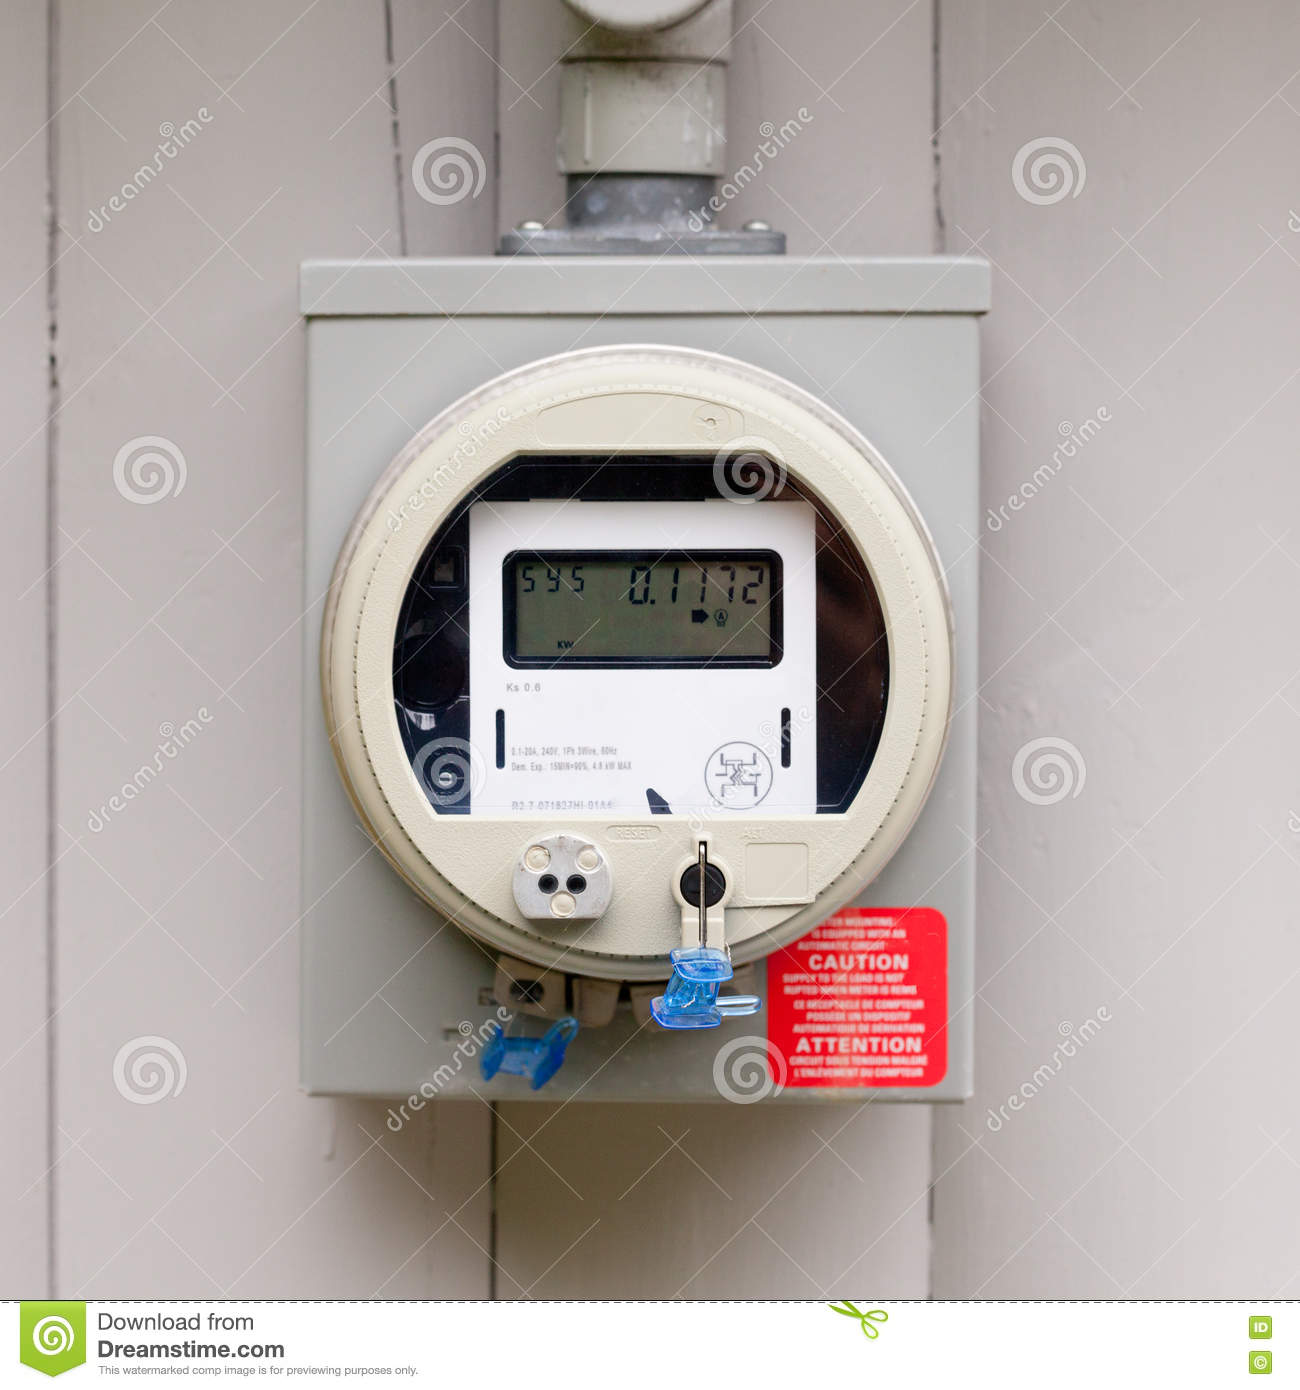 Residential Energy Meter : Residential smart grid digital power supply meter stock